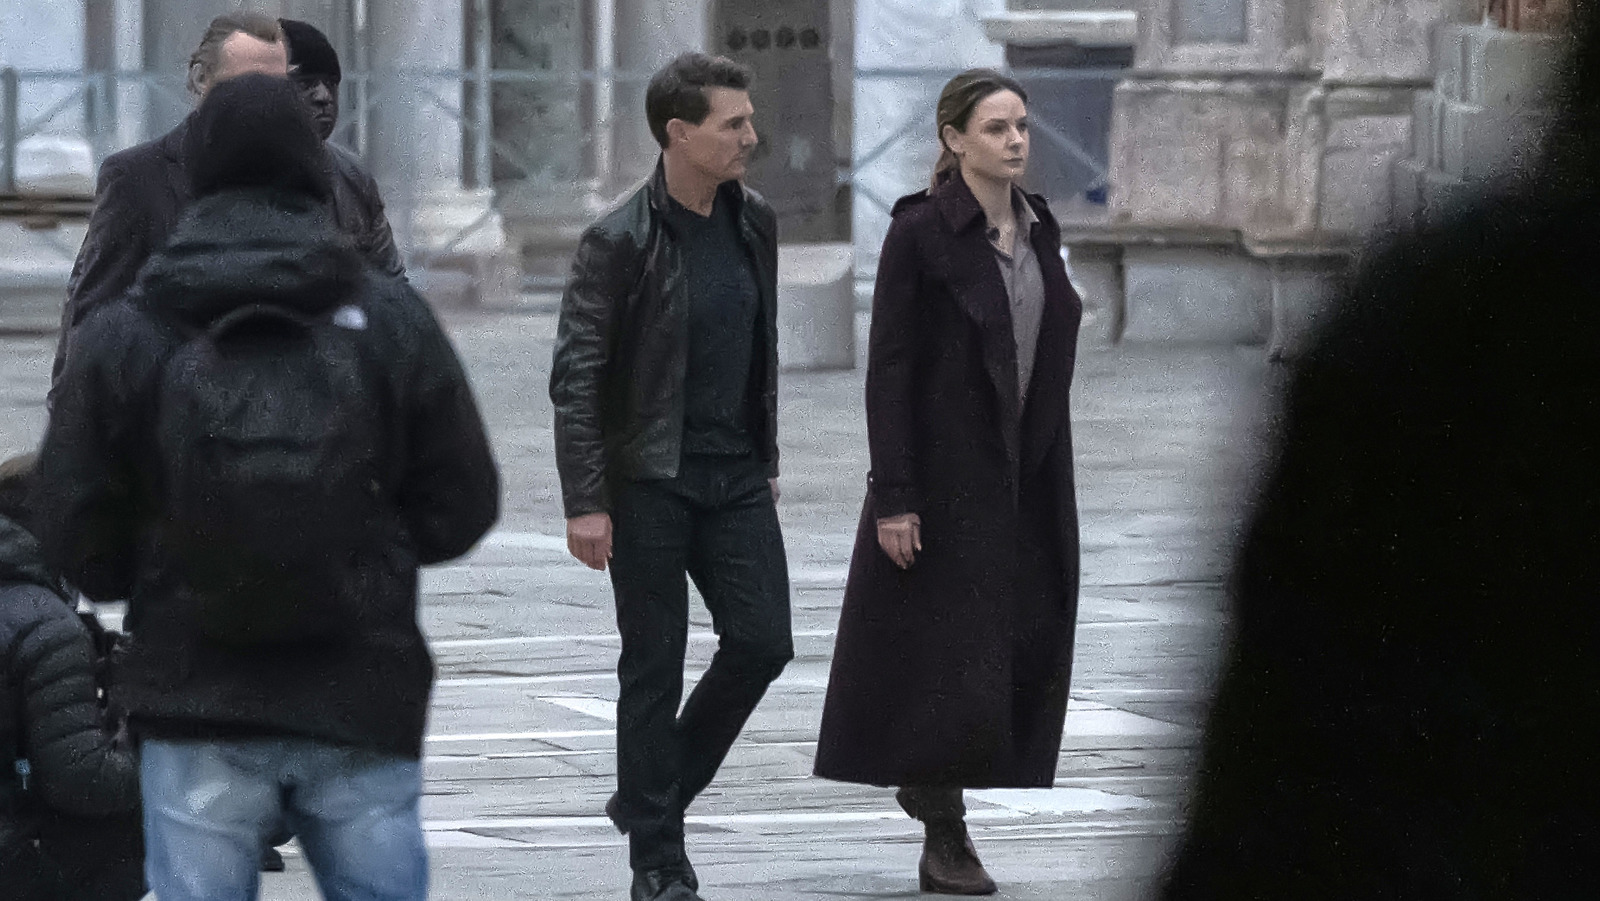 Mission Impossible 7 Set In Venice